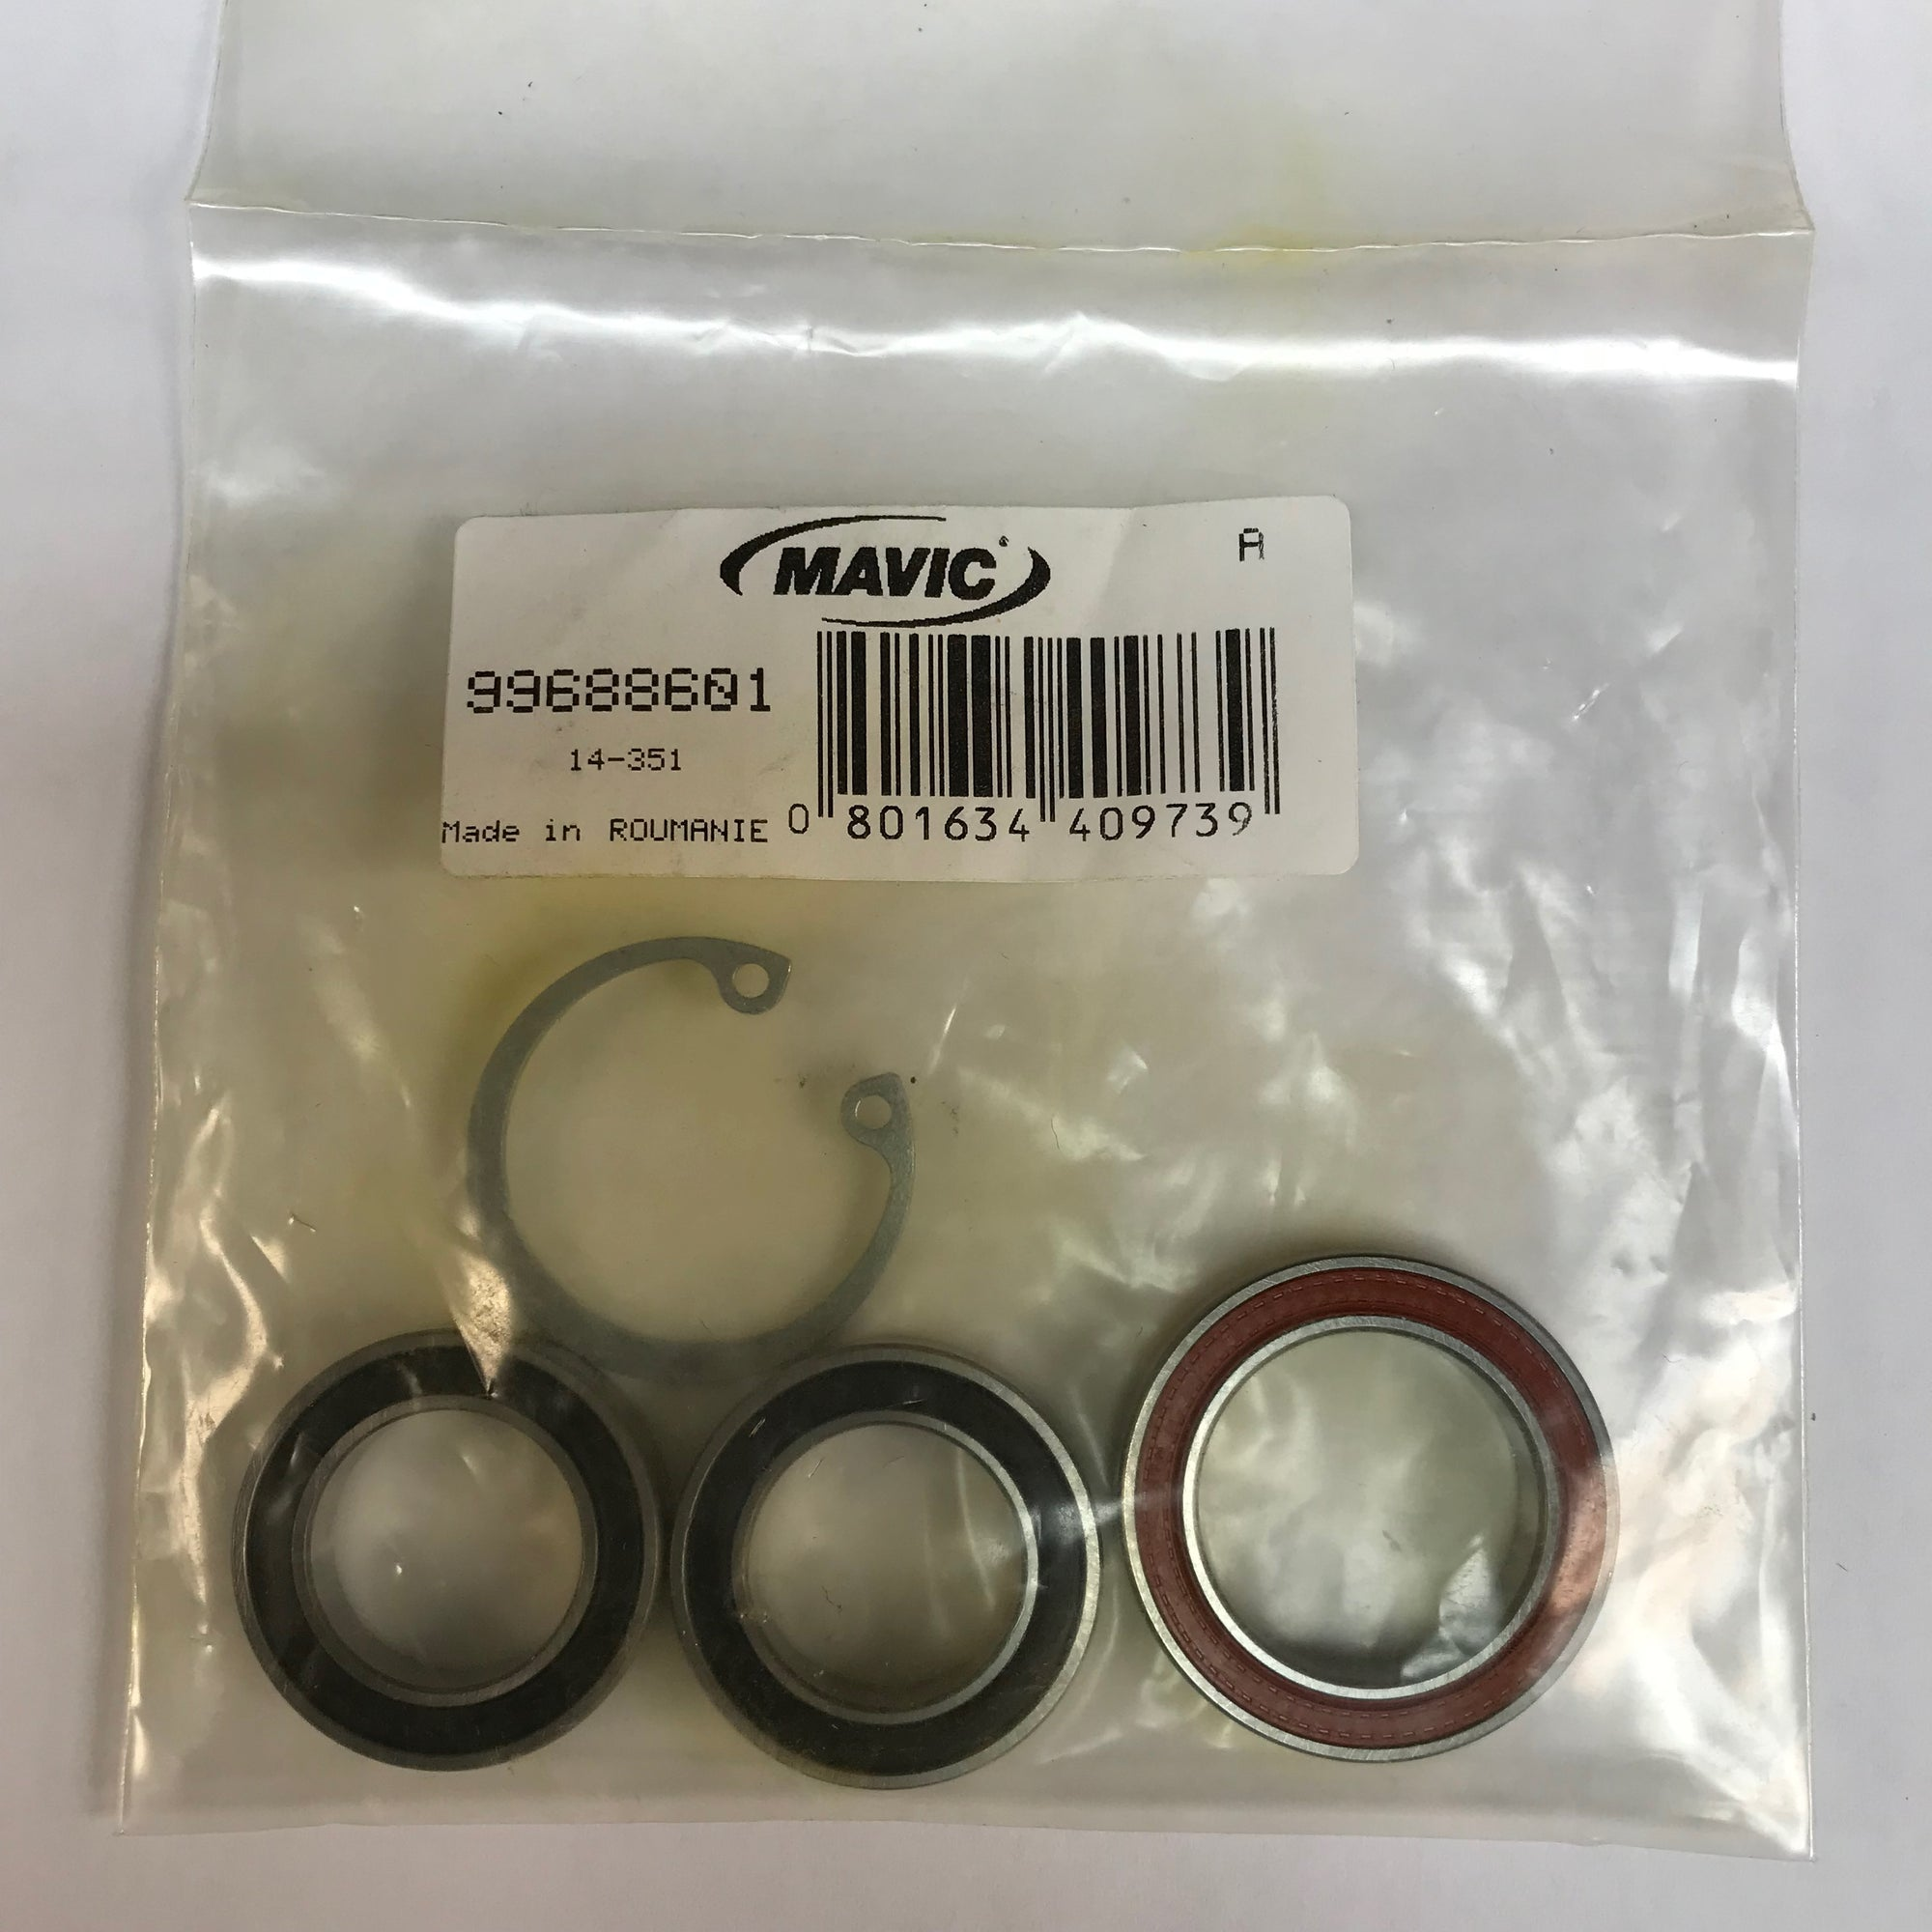 Mavic 99688601 Bearings